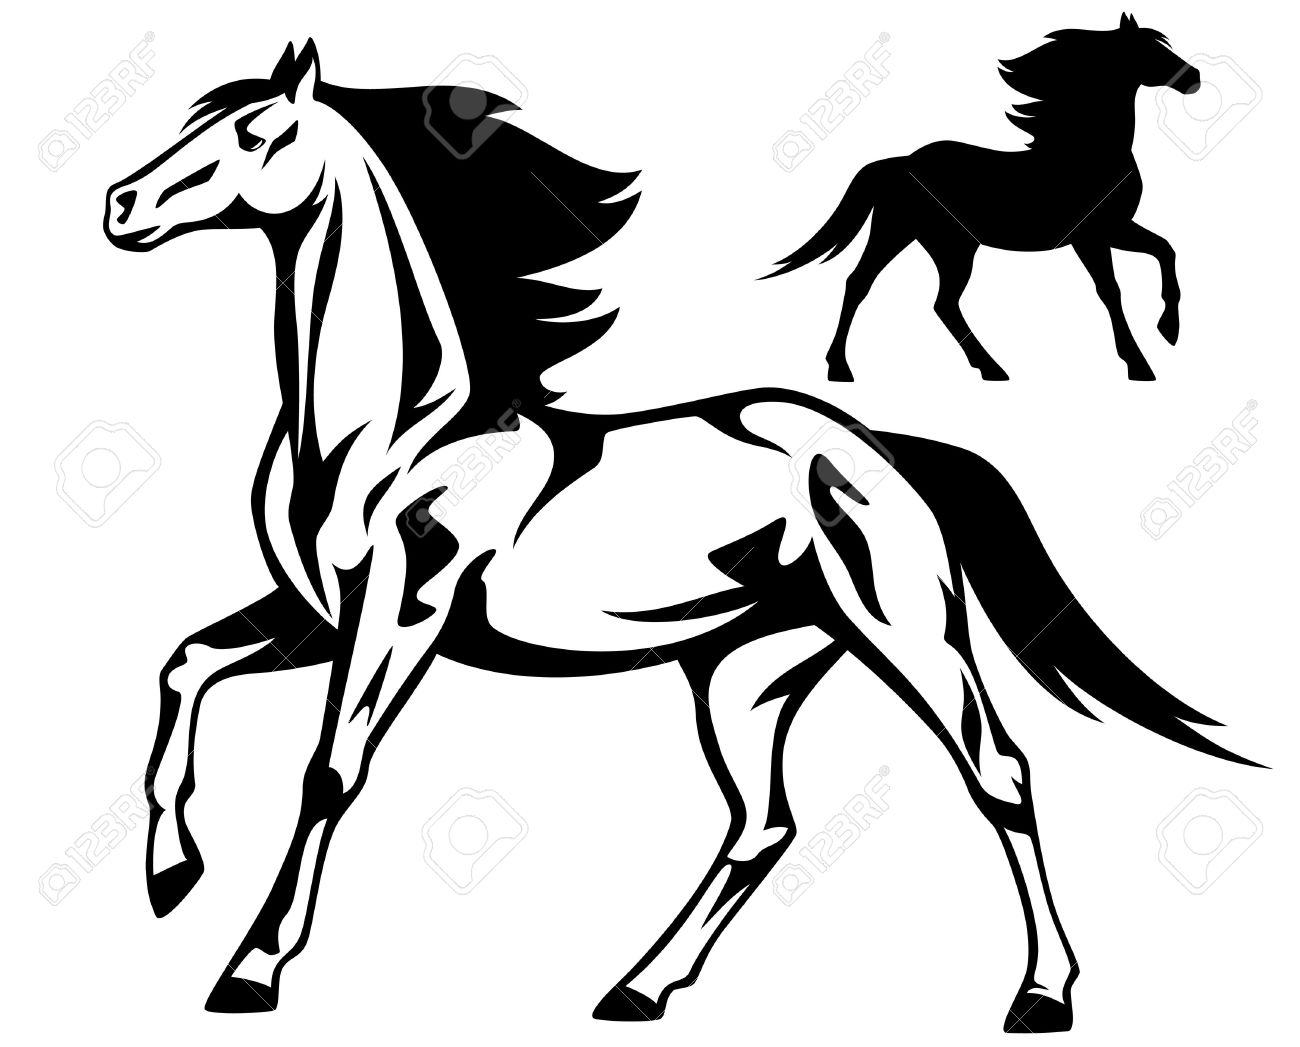 Running Horse Black And White Vector Outline And Silhouette Royalty Free Cliparts Vectors And Stock Illustration Image 19621007